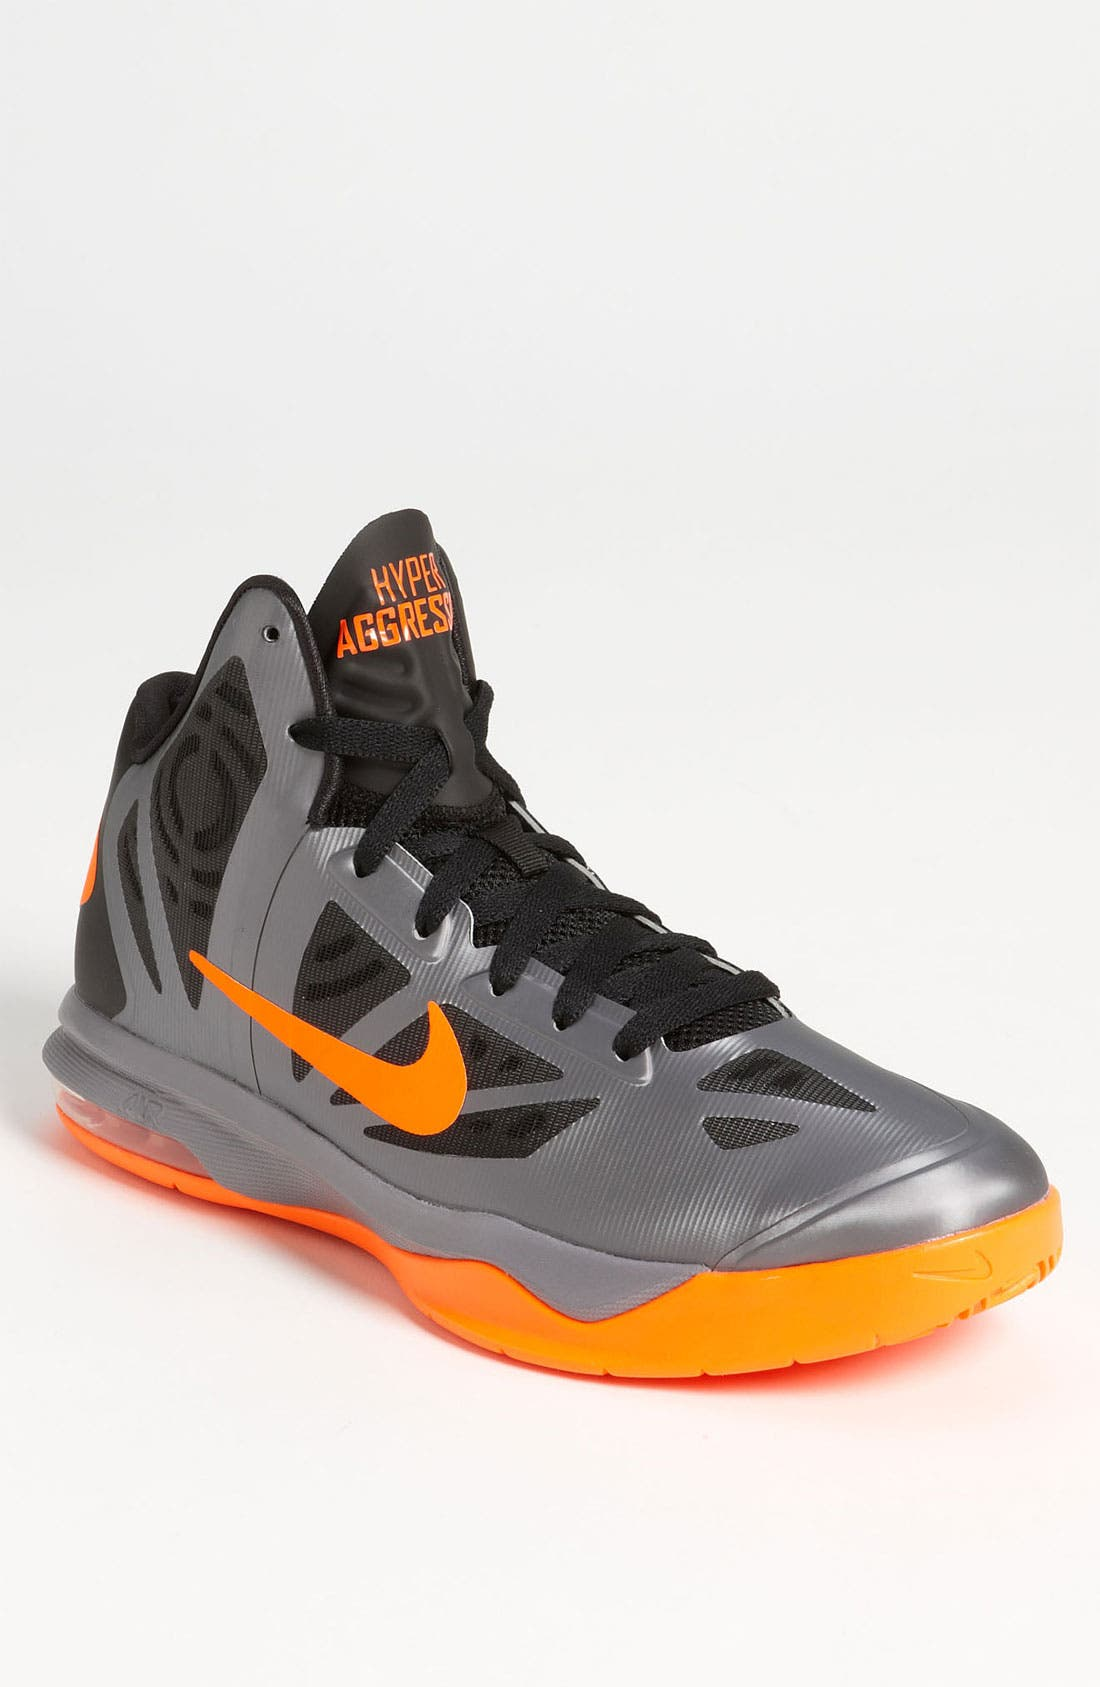 Main Image - Nike 'Air Max HyperAggressor' Basketball Shoe (Men)